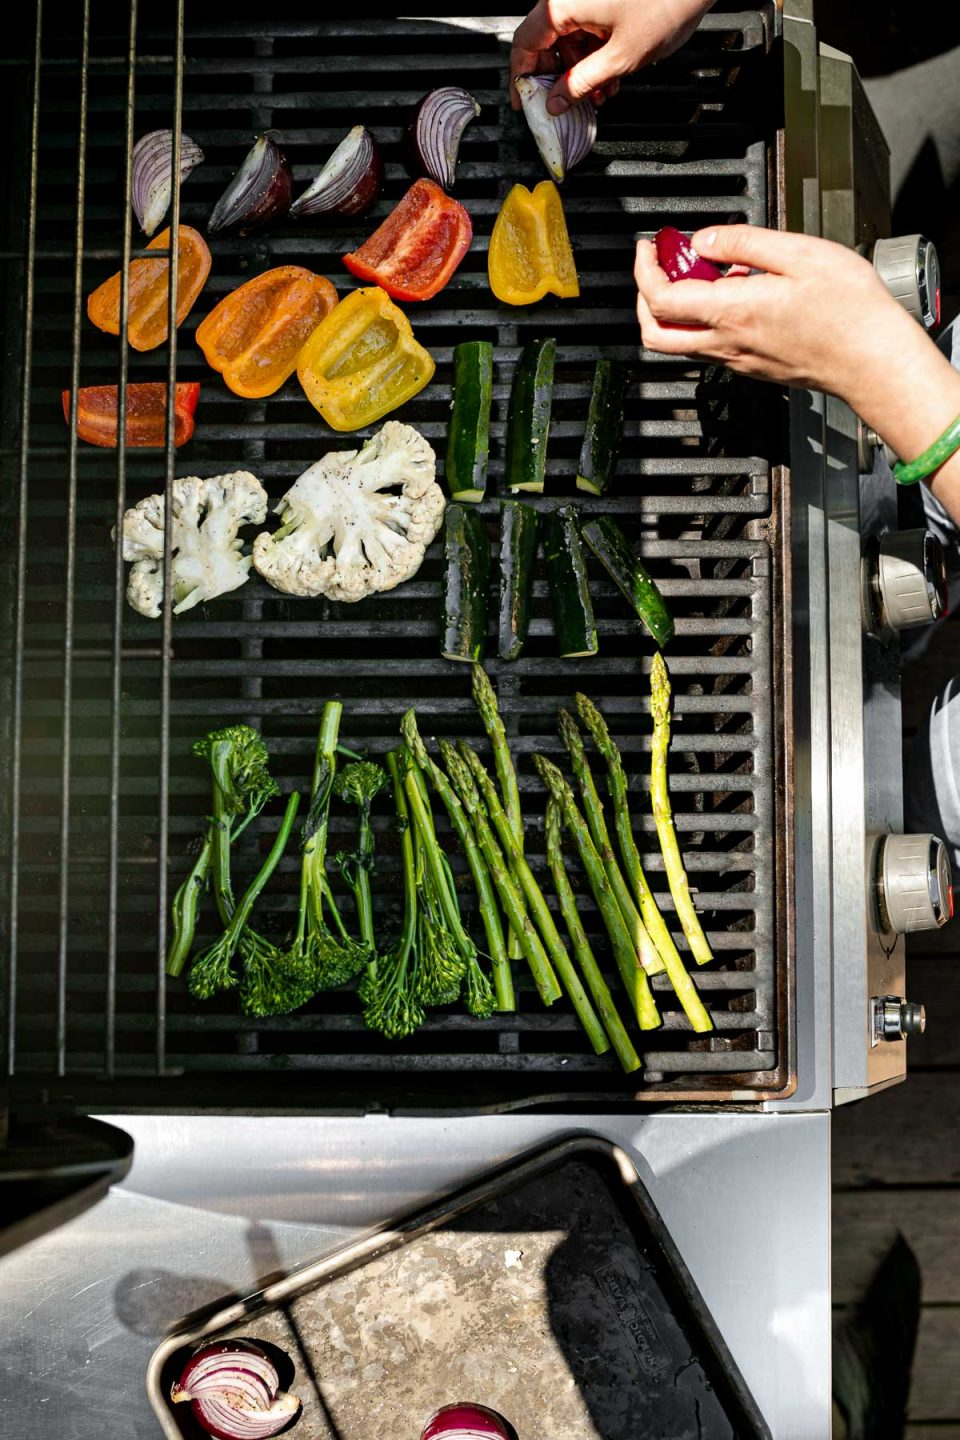 An overhead shot of a woman's hands placing a variety of raw veggies on top of gas grill grates for grilling. These veggies include broccolini, asparagus, cauliflower, zucchini, onion, & peppers. A aluminum baking sheet sits on the shelf to the left of the grill with additional onions ready to be placed on the grates.